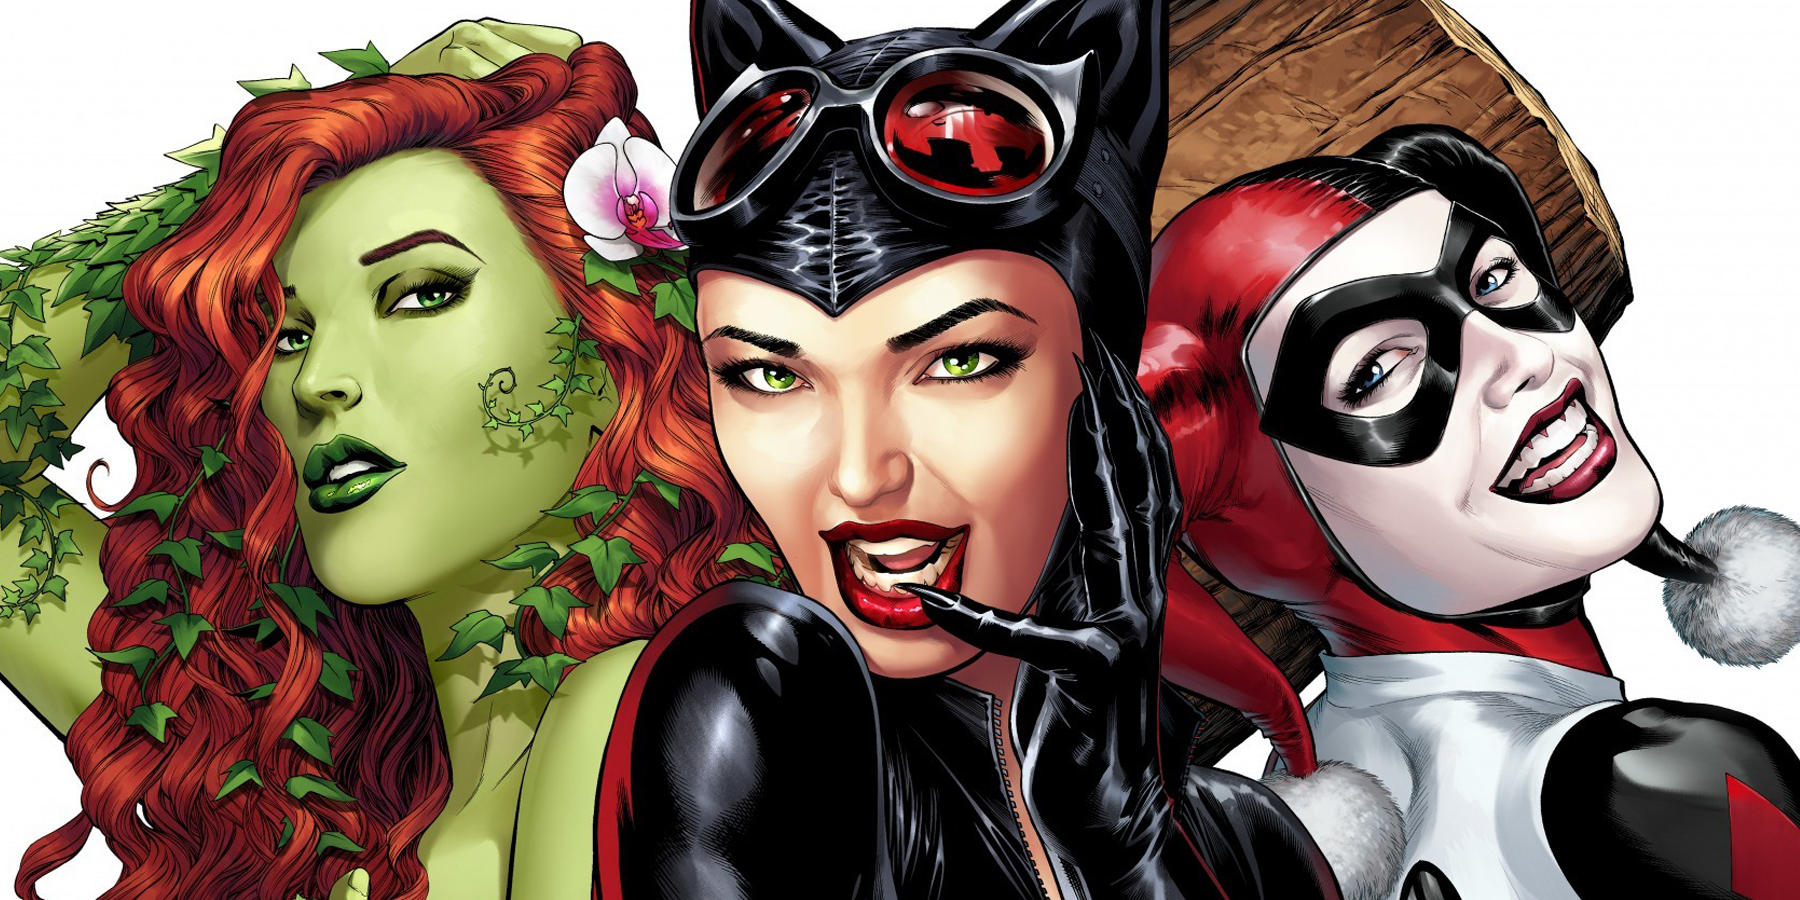 Gotham City Sirens DC Comics